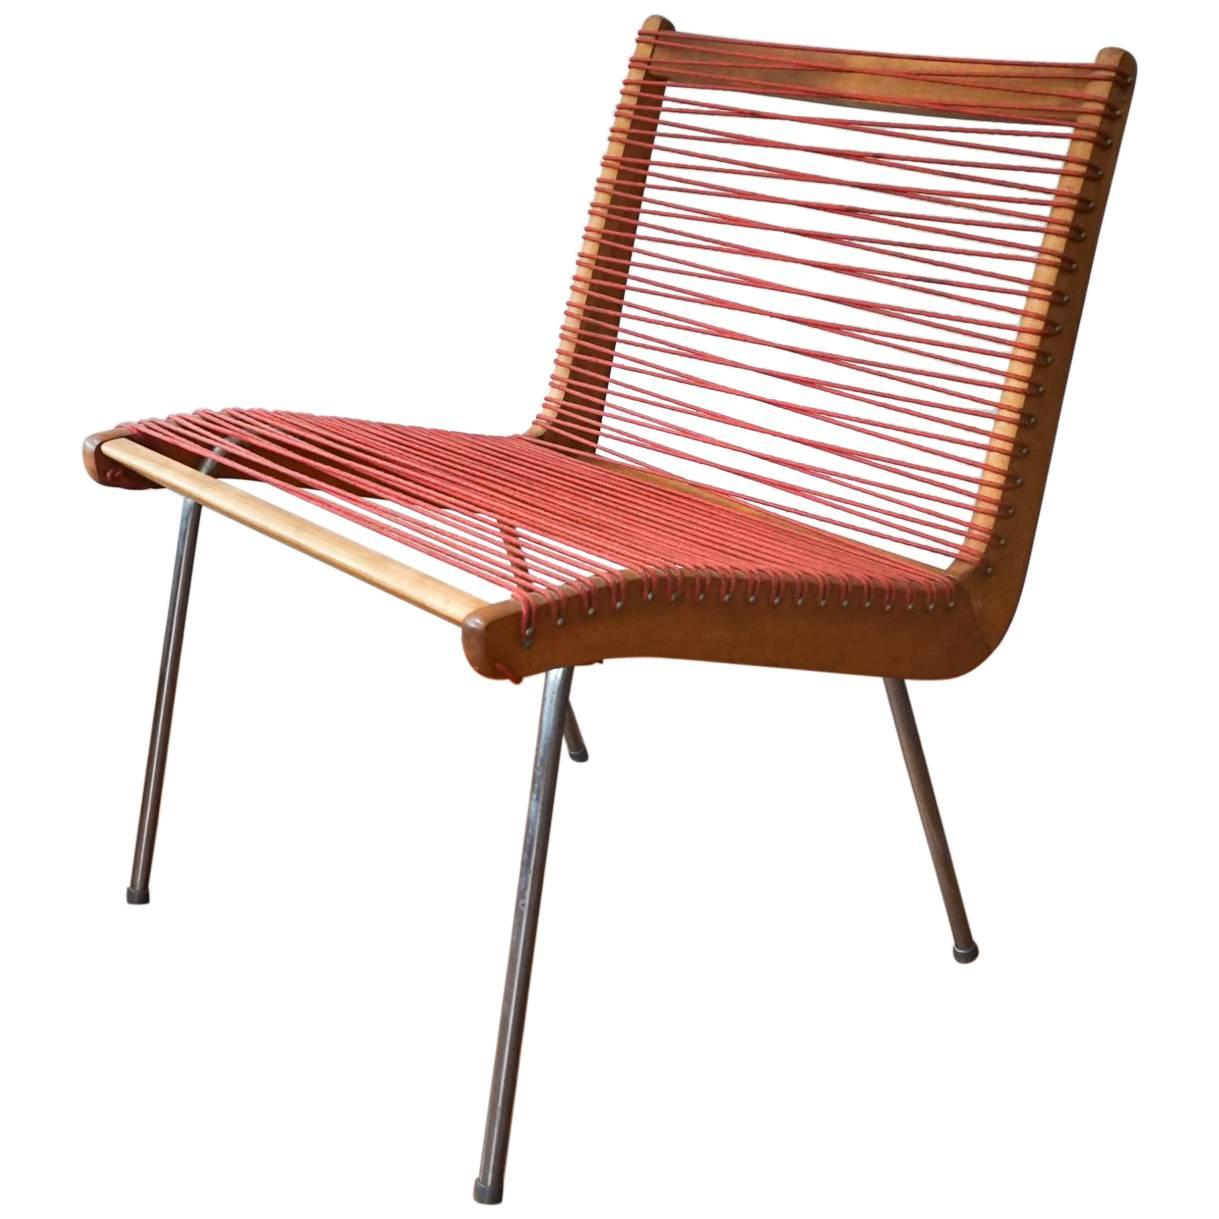 String Chair By Robert J Ellenberger For Calfab Good Design, 1950s For Sale